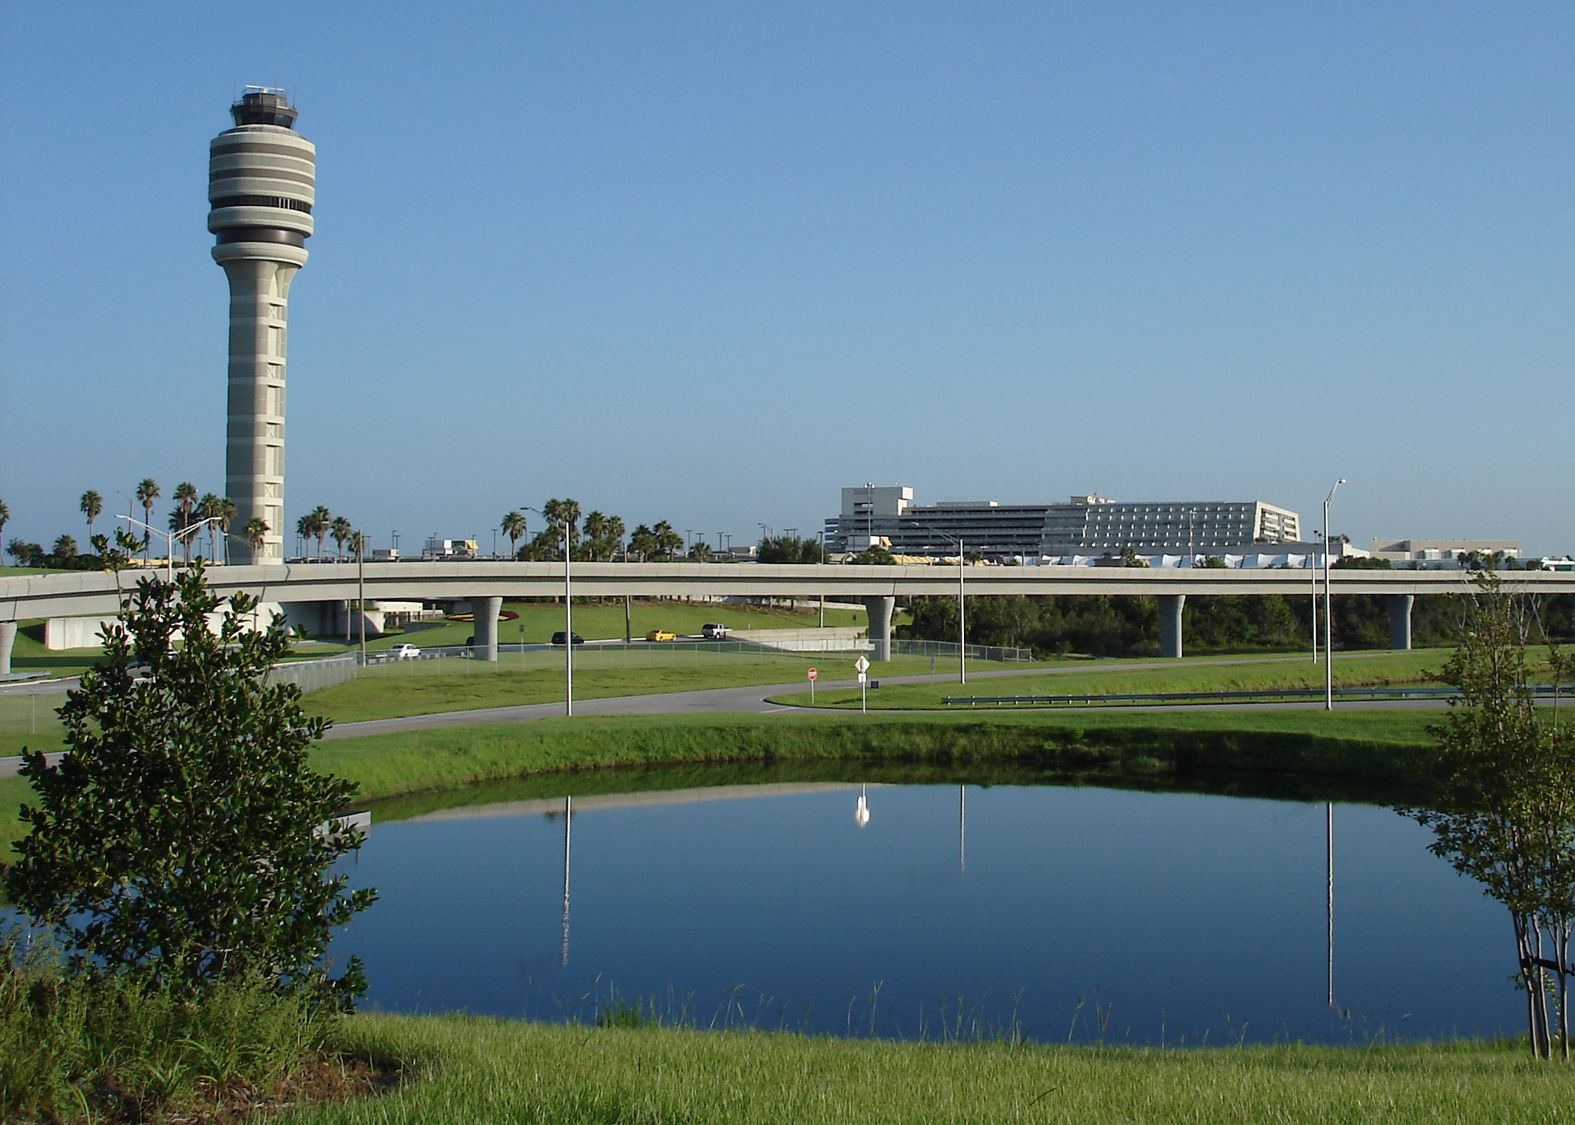 FAA Tower/Terminal Across Lake